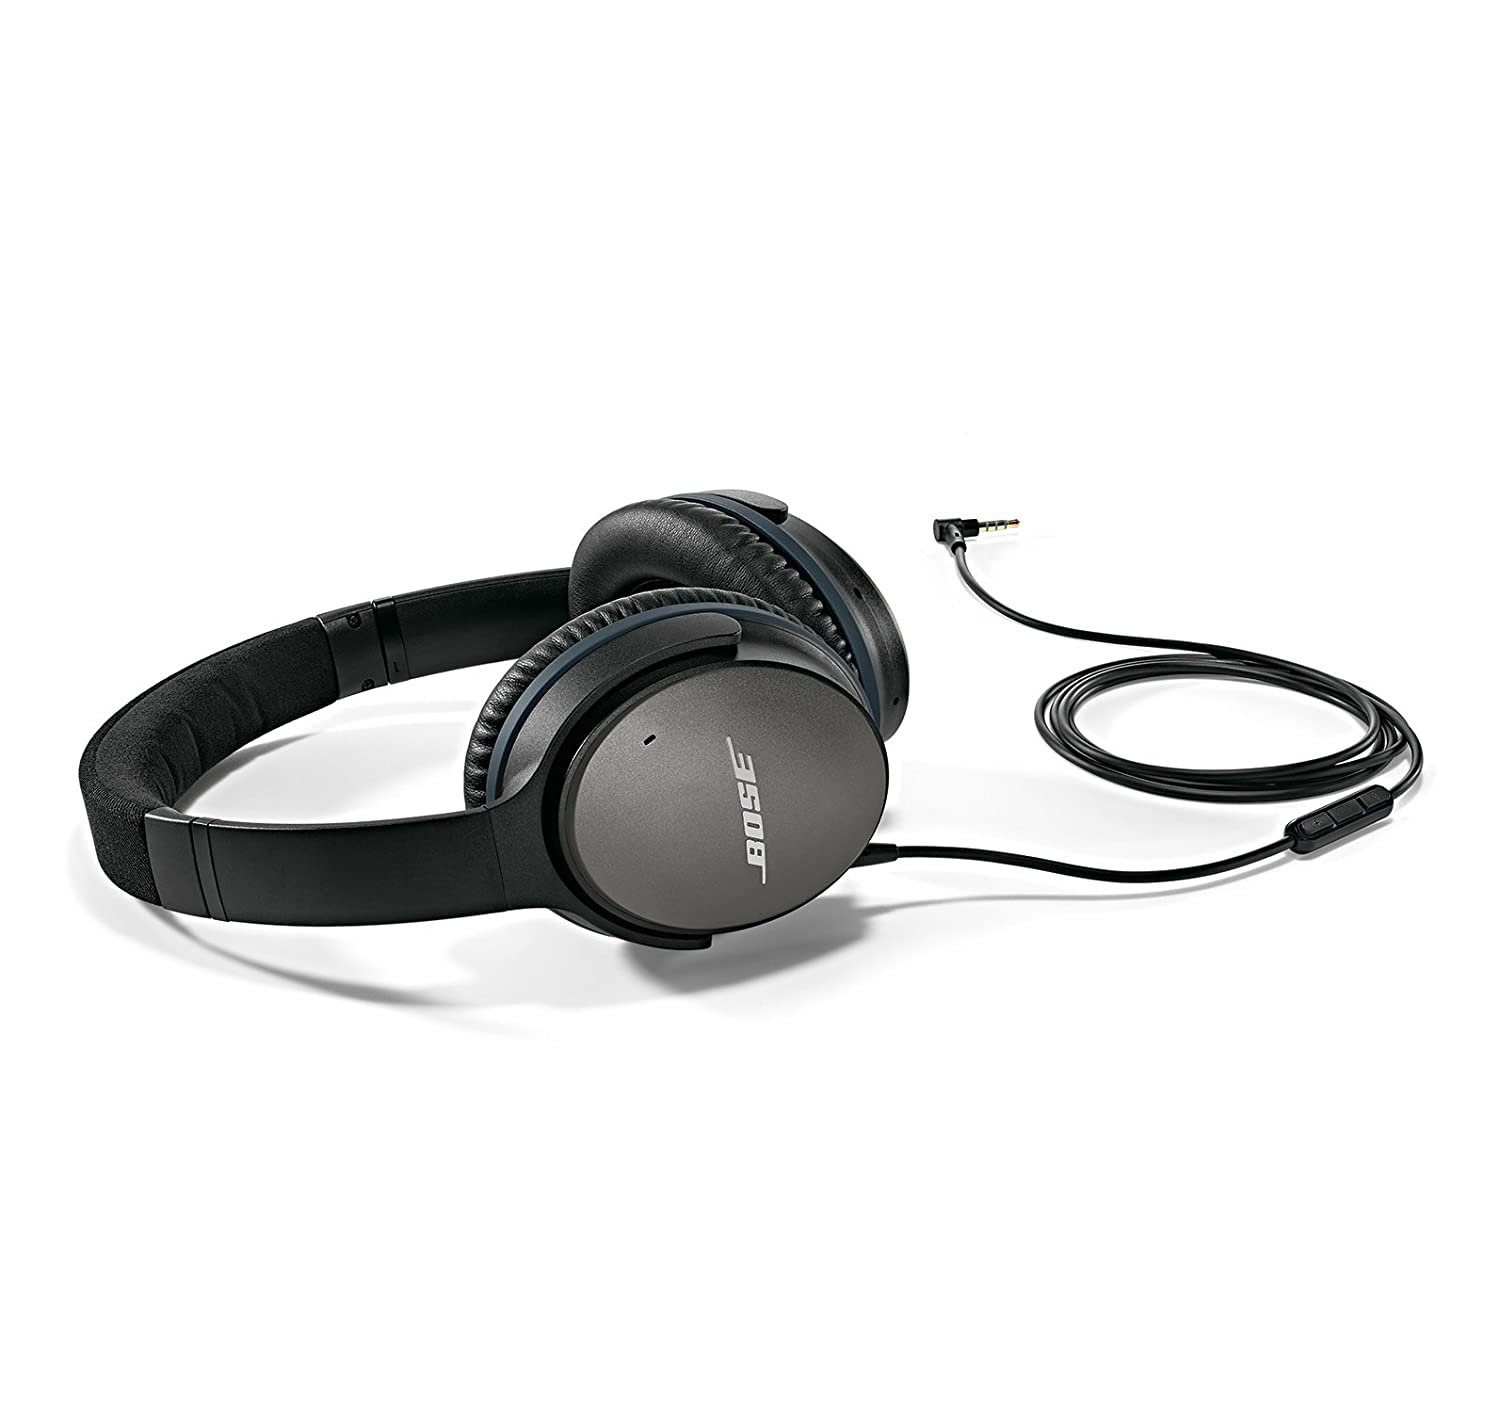 [amazon.de] Bose QuiteComfort 25 Noise Cancelling Headphones za 149€ umjesto 222€